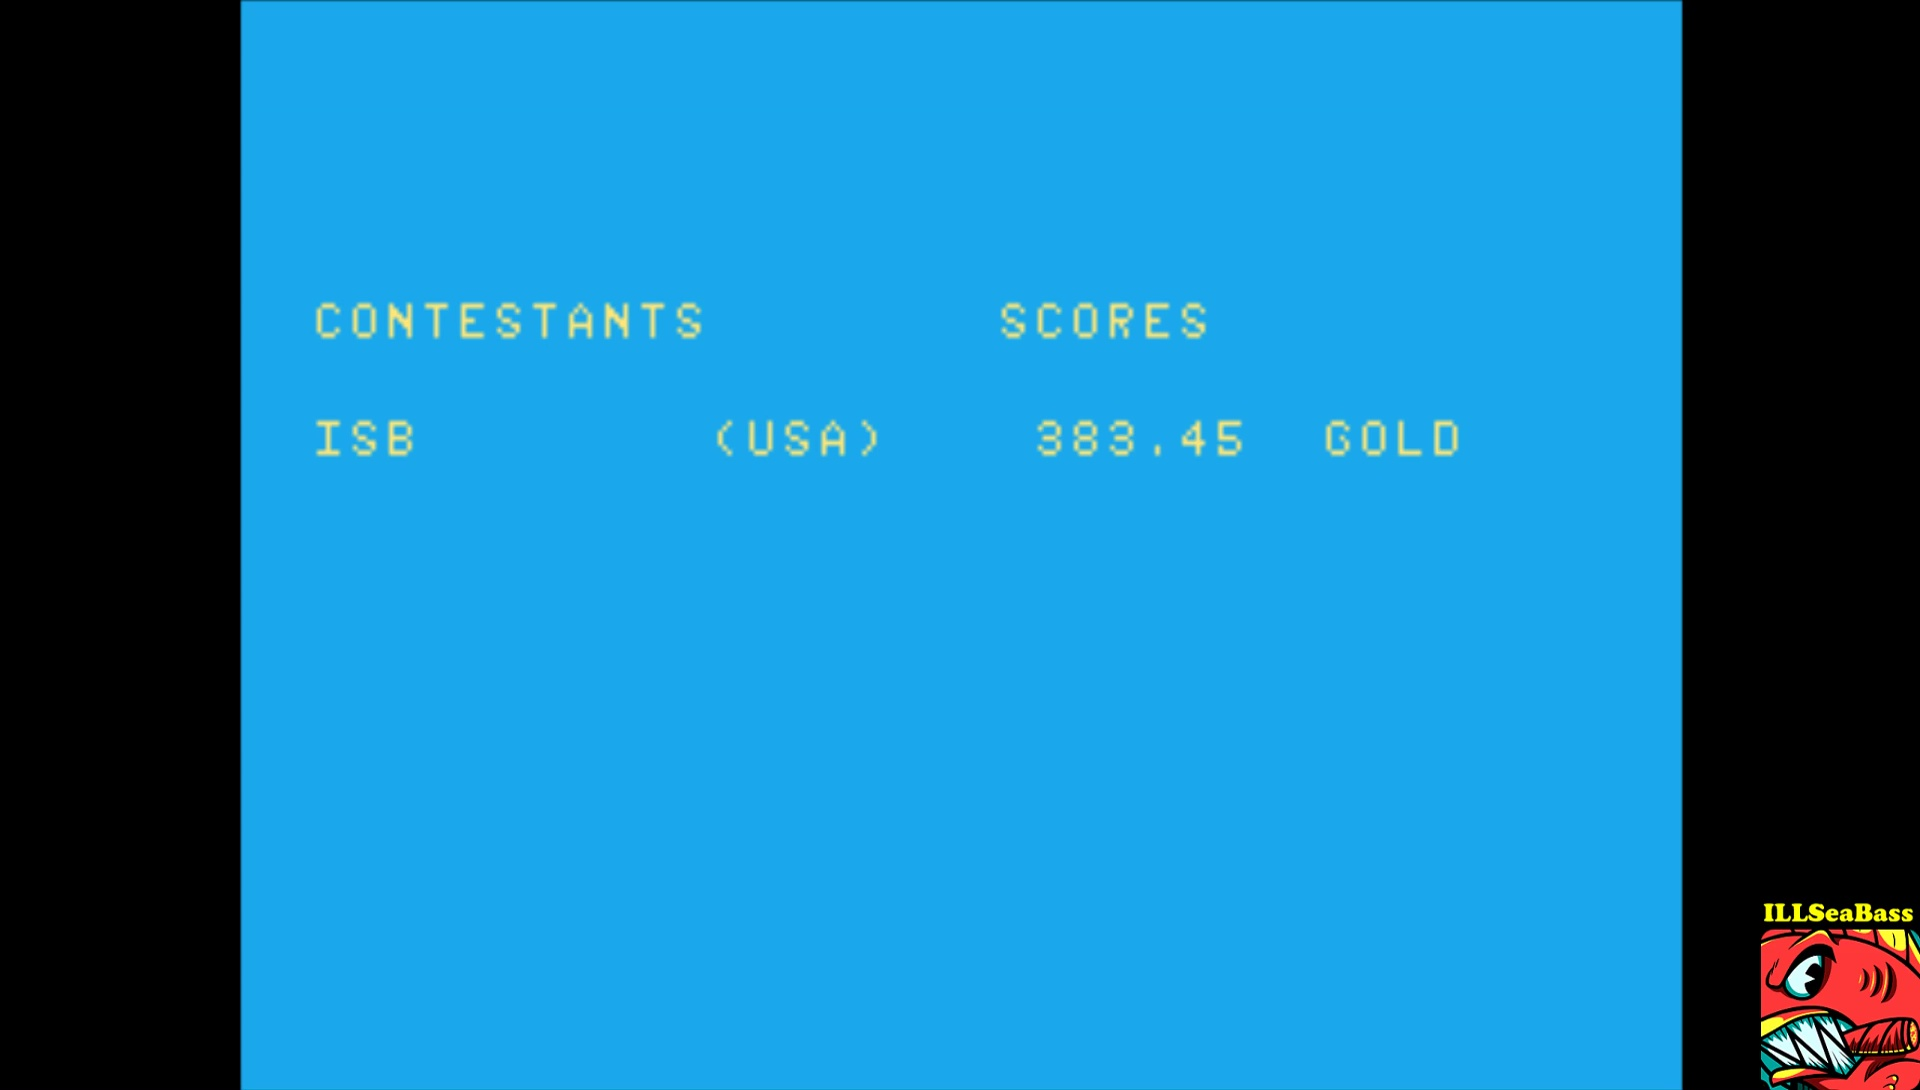 ILLSeaBass: Summer Games: Diving (Atari 7800 Emulated) 383 points on 2017-02-16 20:39:24